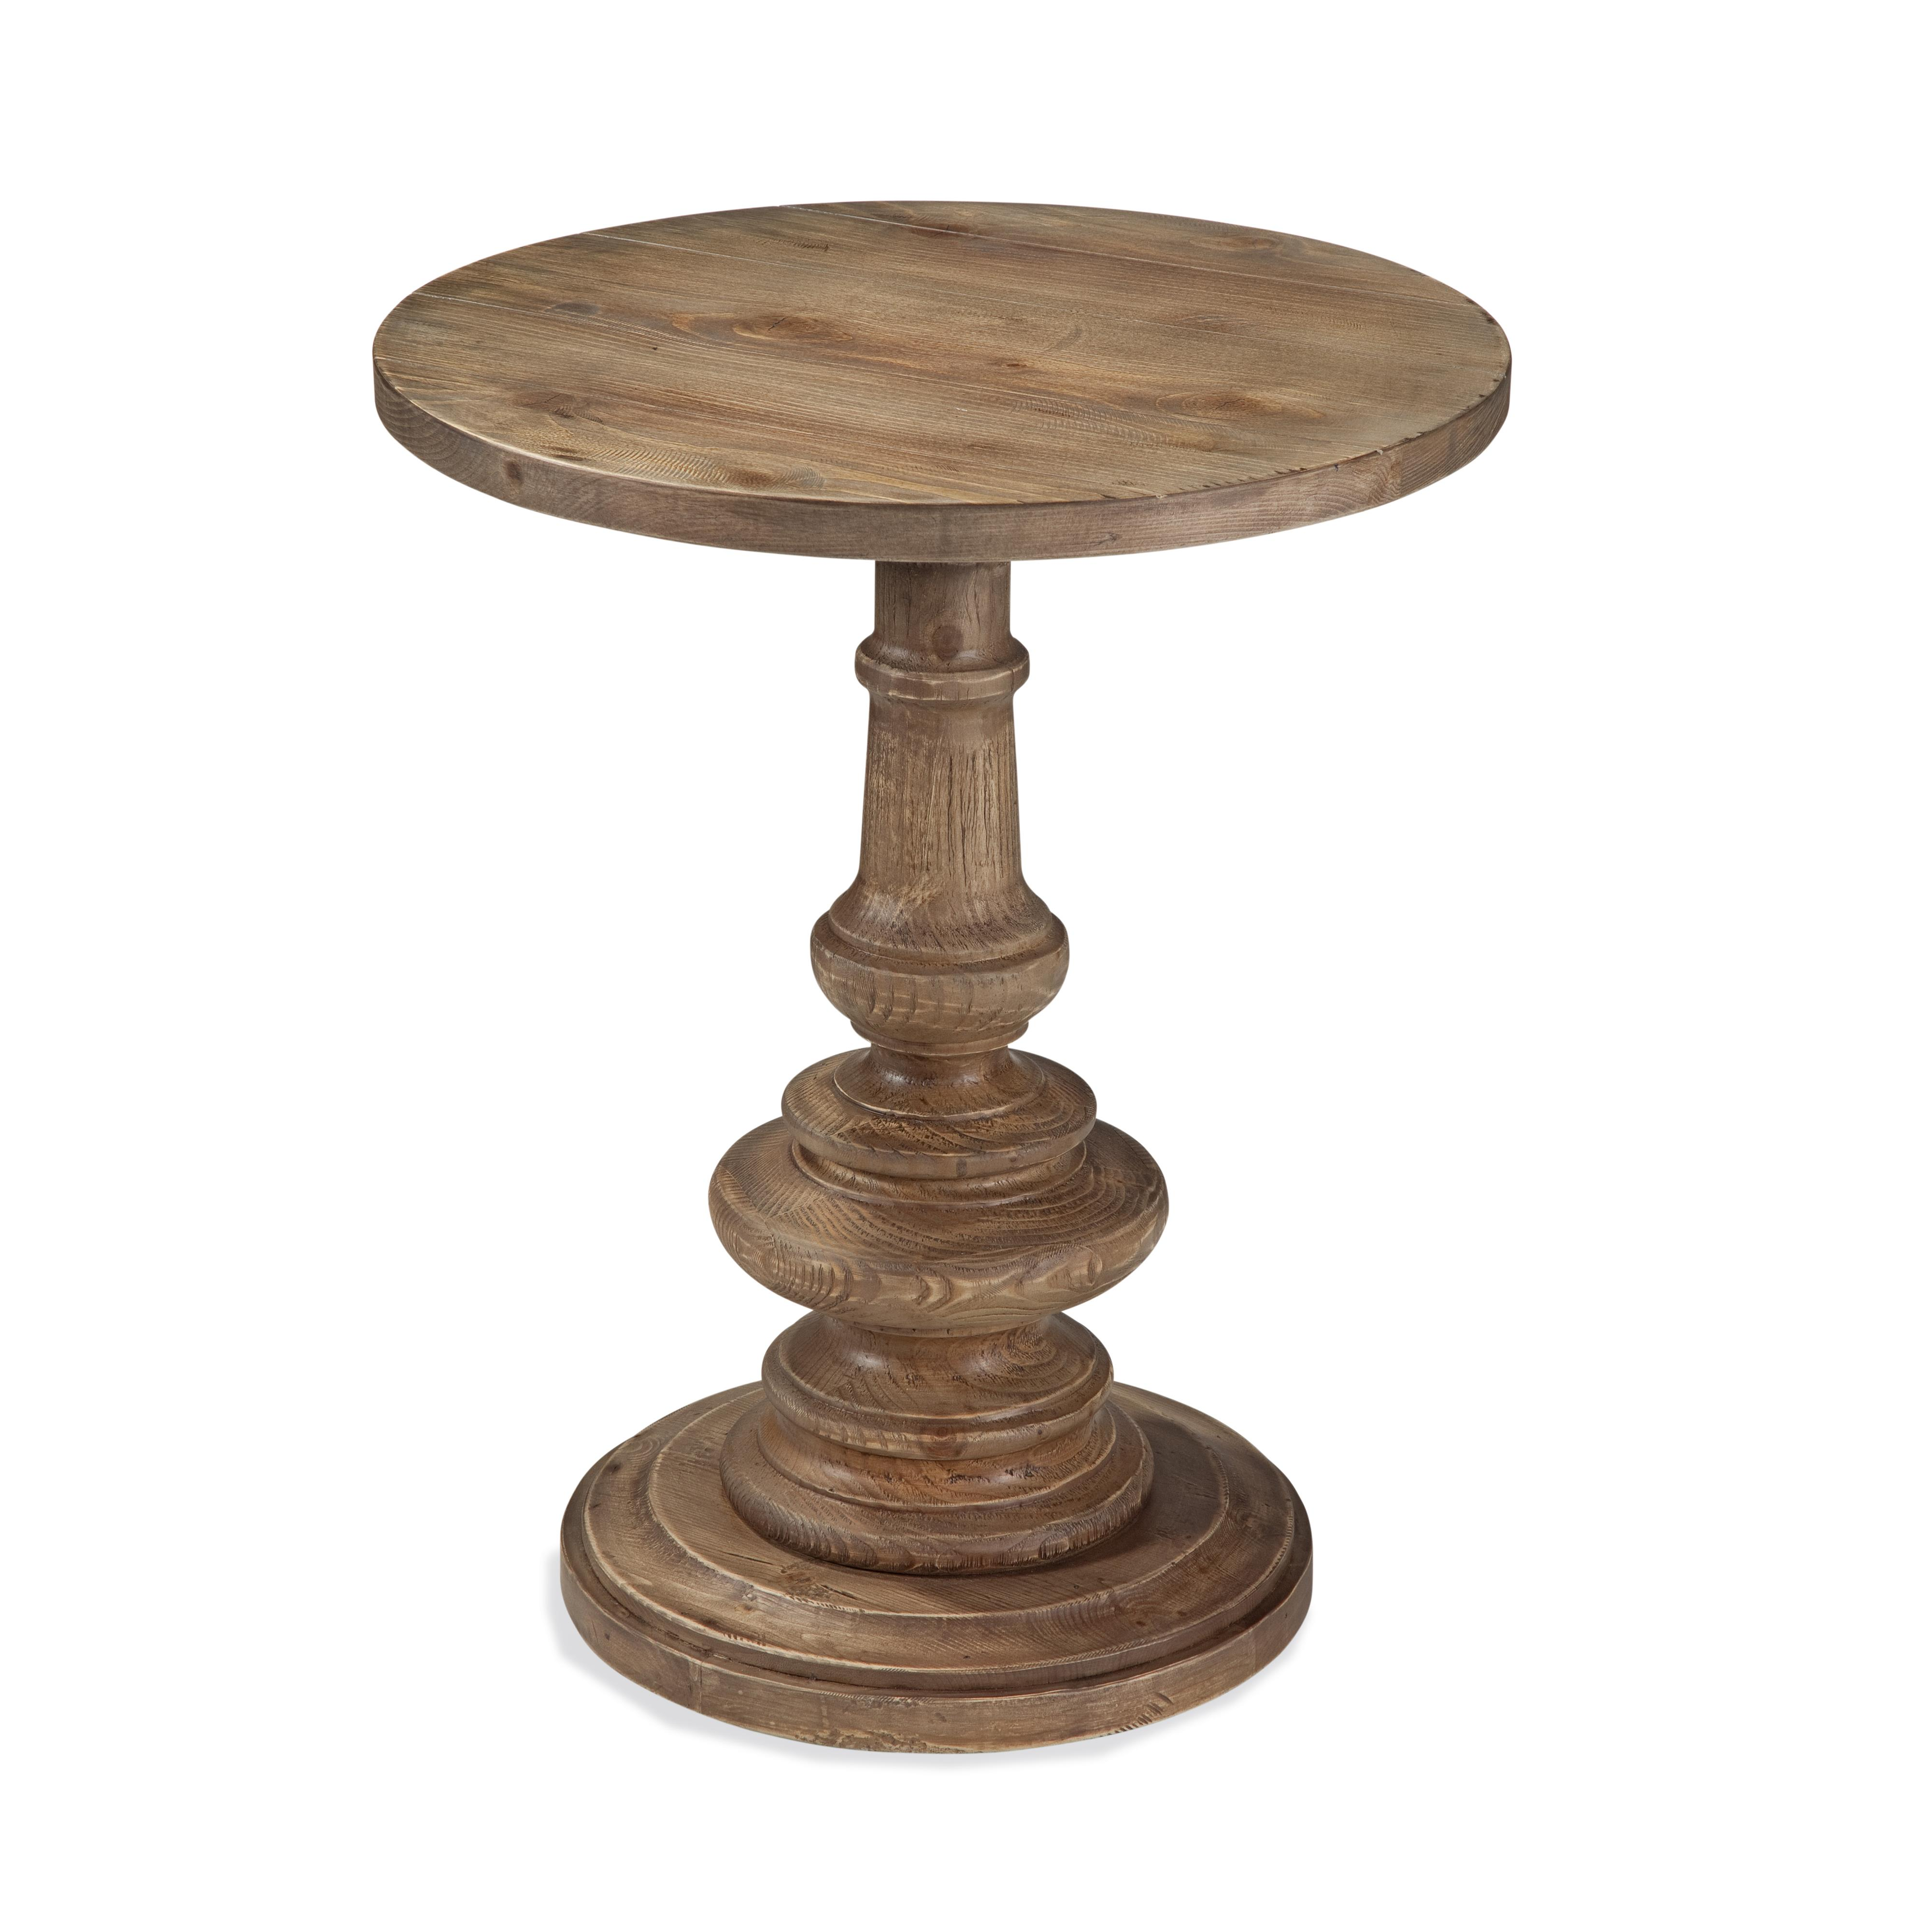 Belgian Luxe Lamond Scatter Table by Bassett Mirror at Alison Craig Home Furnishings